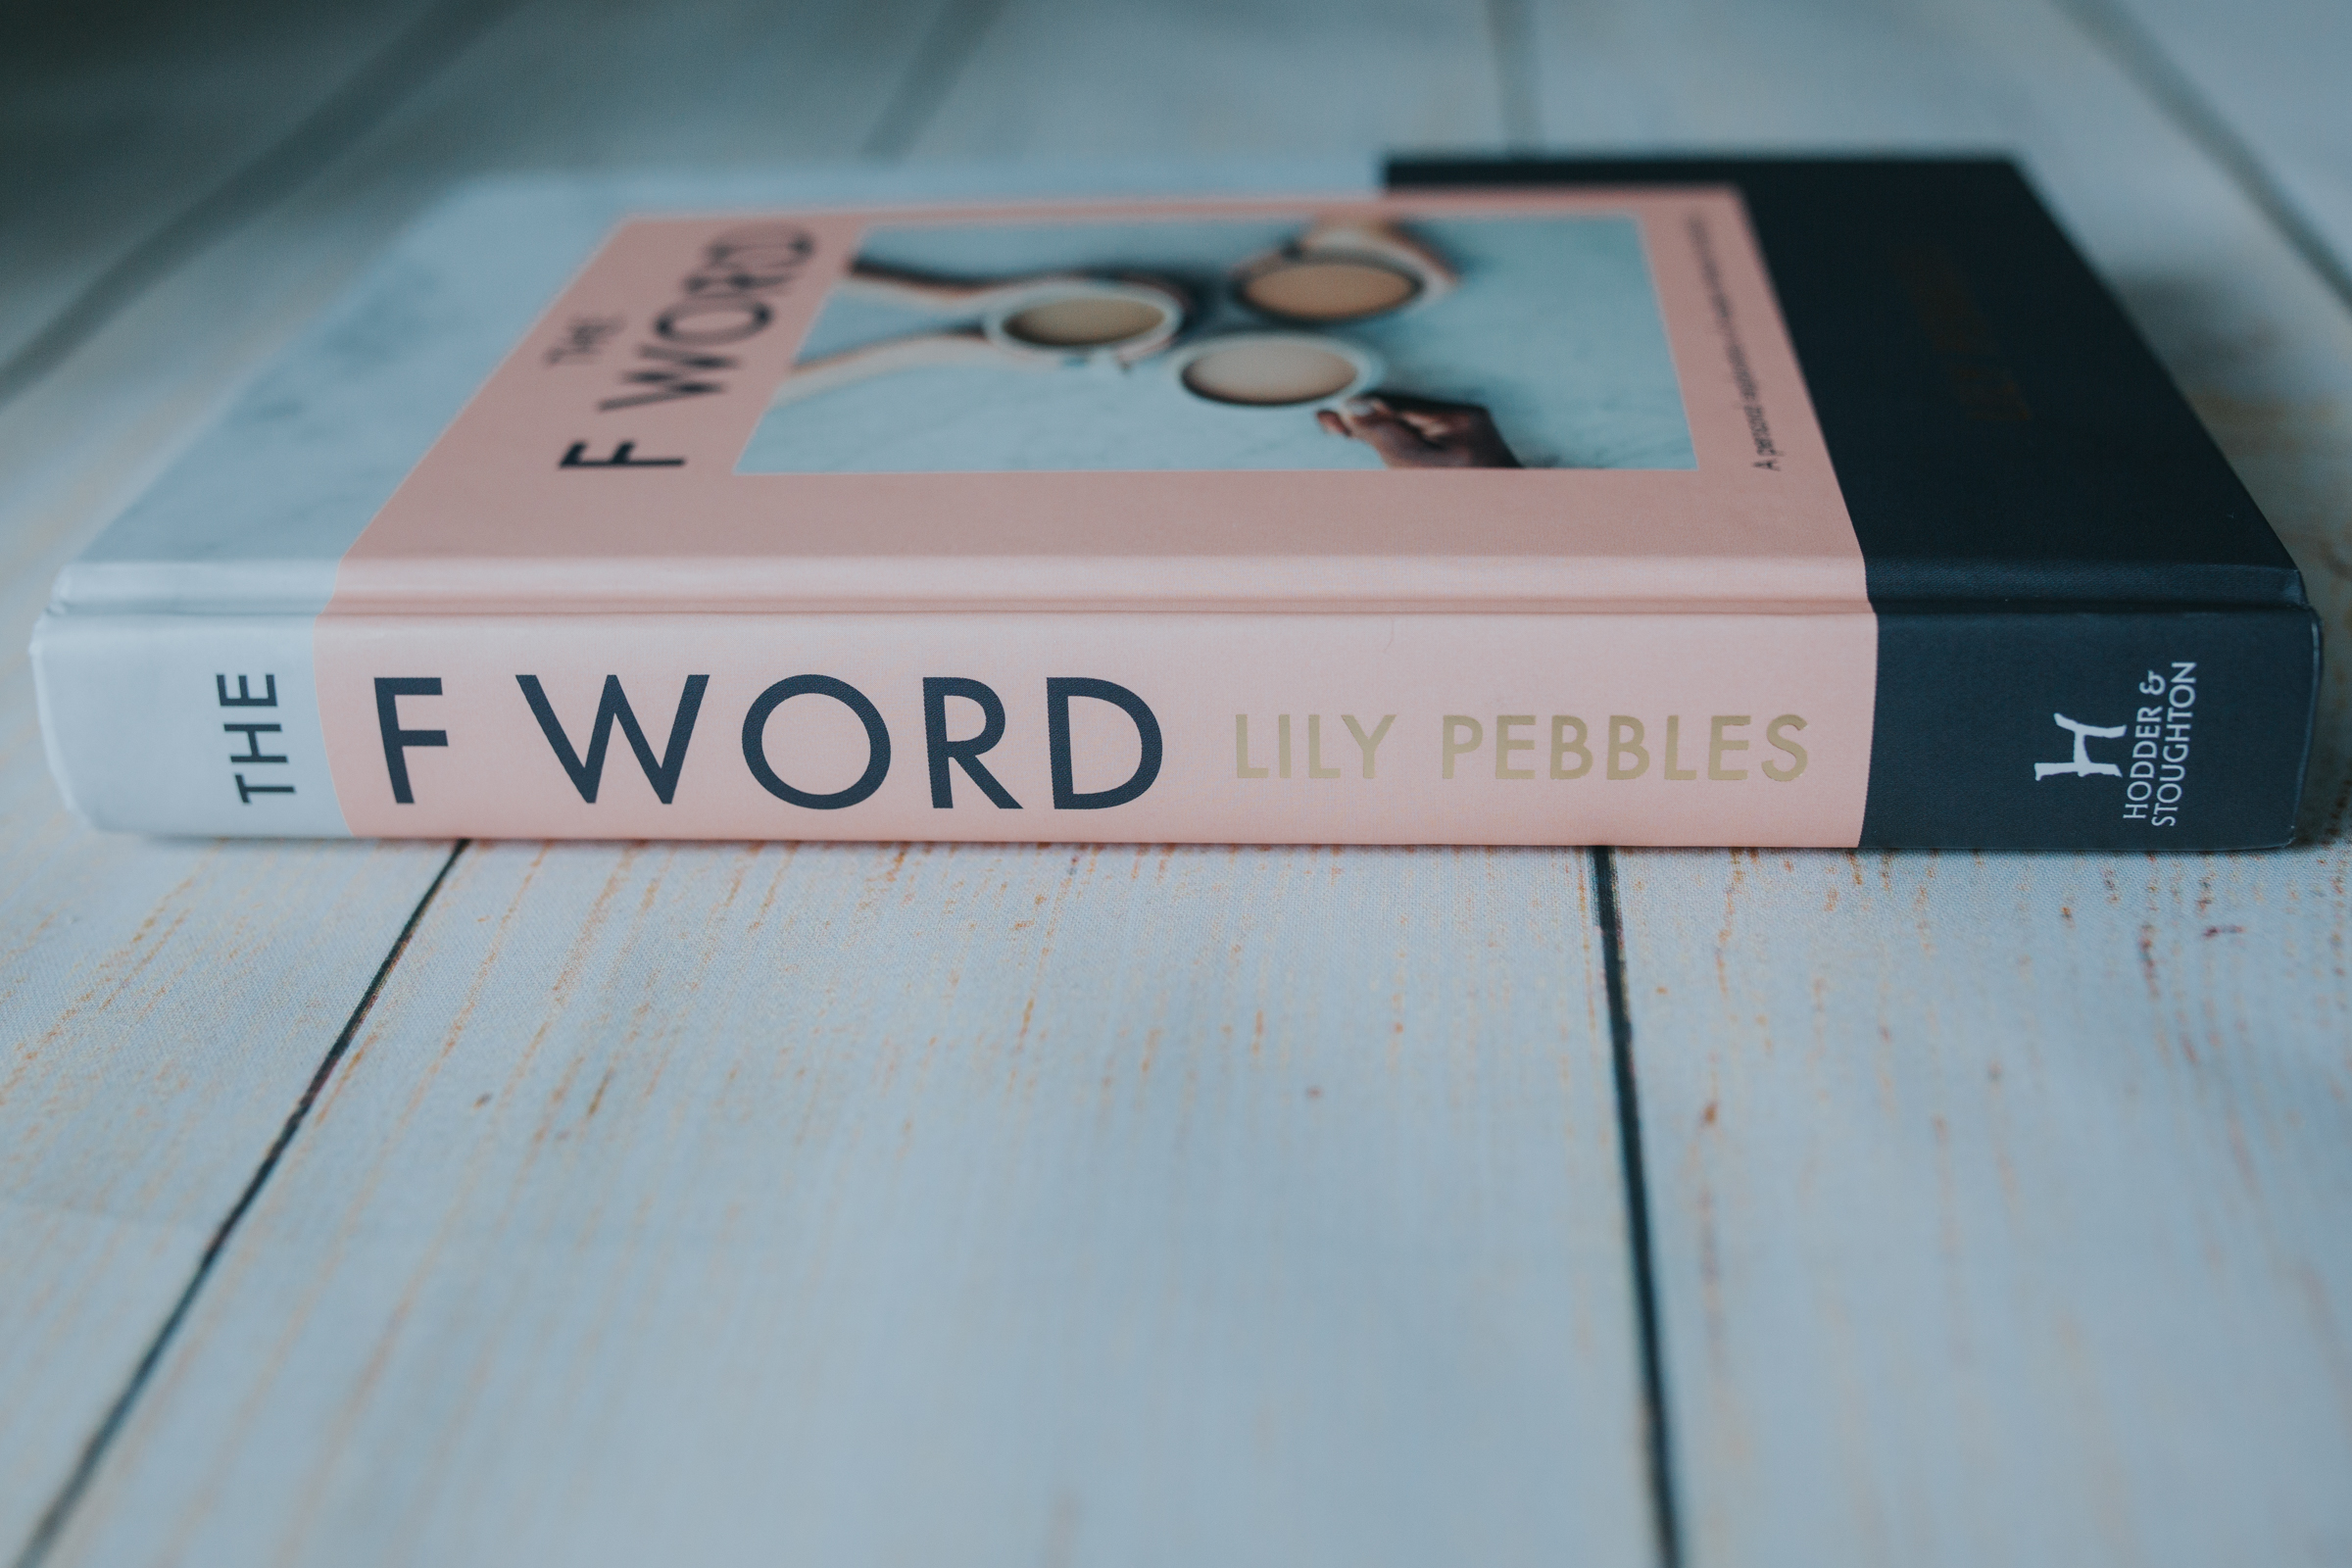 book-review-the-f-word-by-lily-pebbles-minas-planet-london-blogger-jasmina-haskovic3.jpg